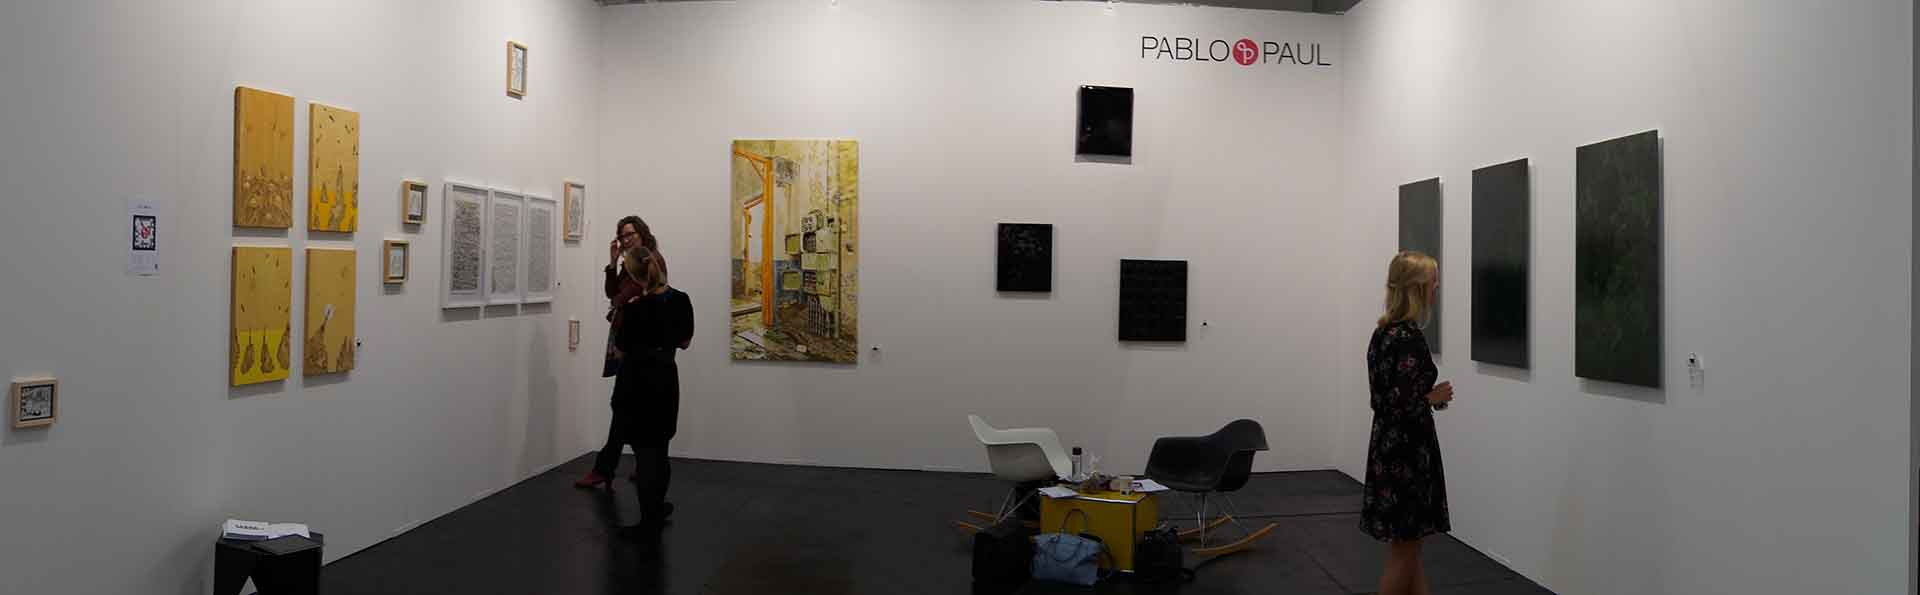 pablo paul art fair k ln pablo paul blog. Black Bedroom Furniture Sets. Home Design Ideas